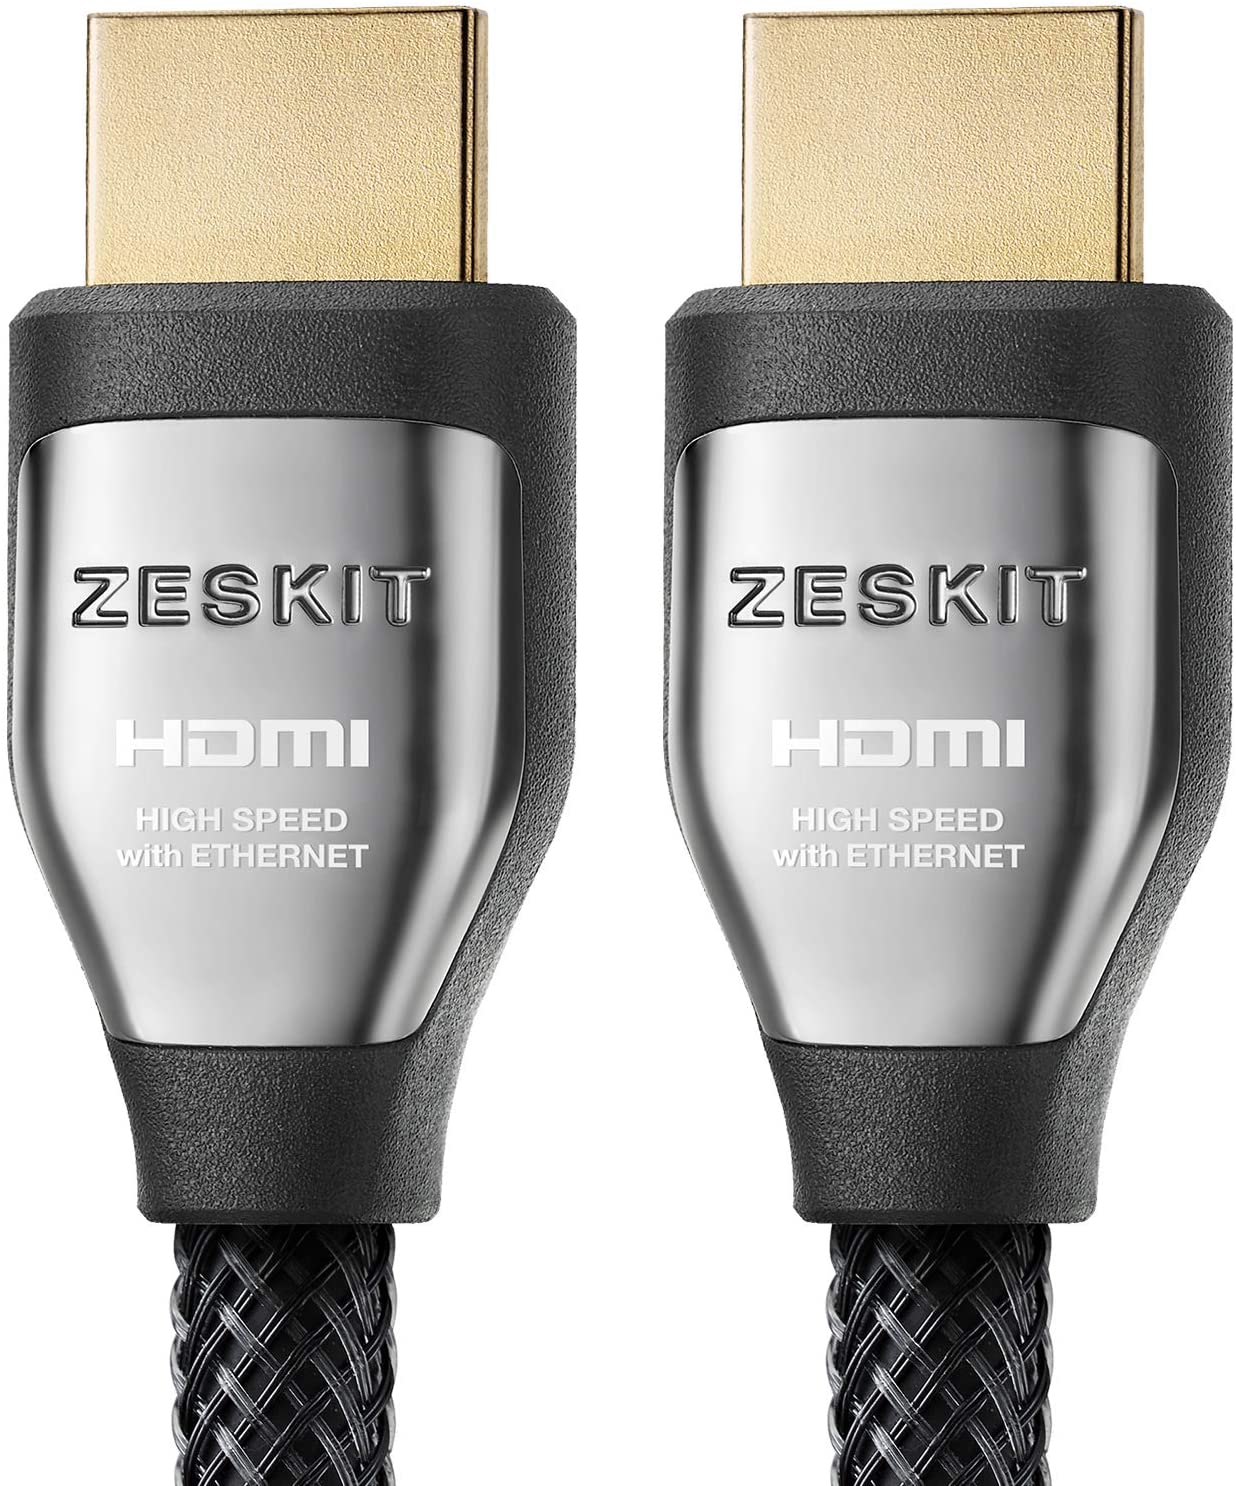 Cinema Plus HDMI Cable by Zeskit